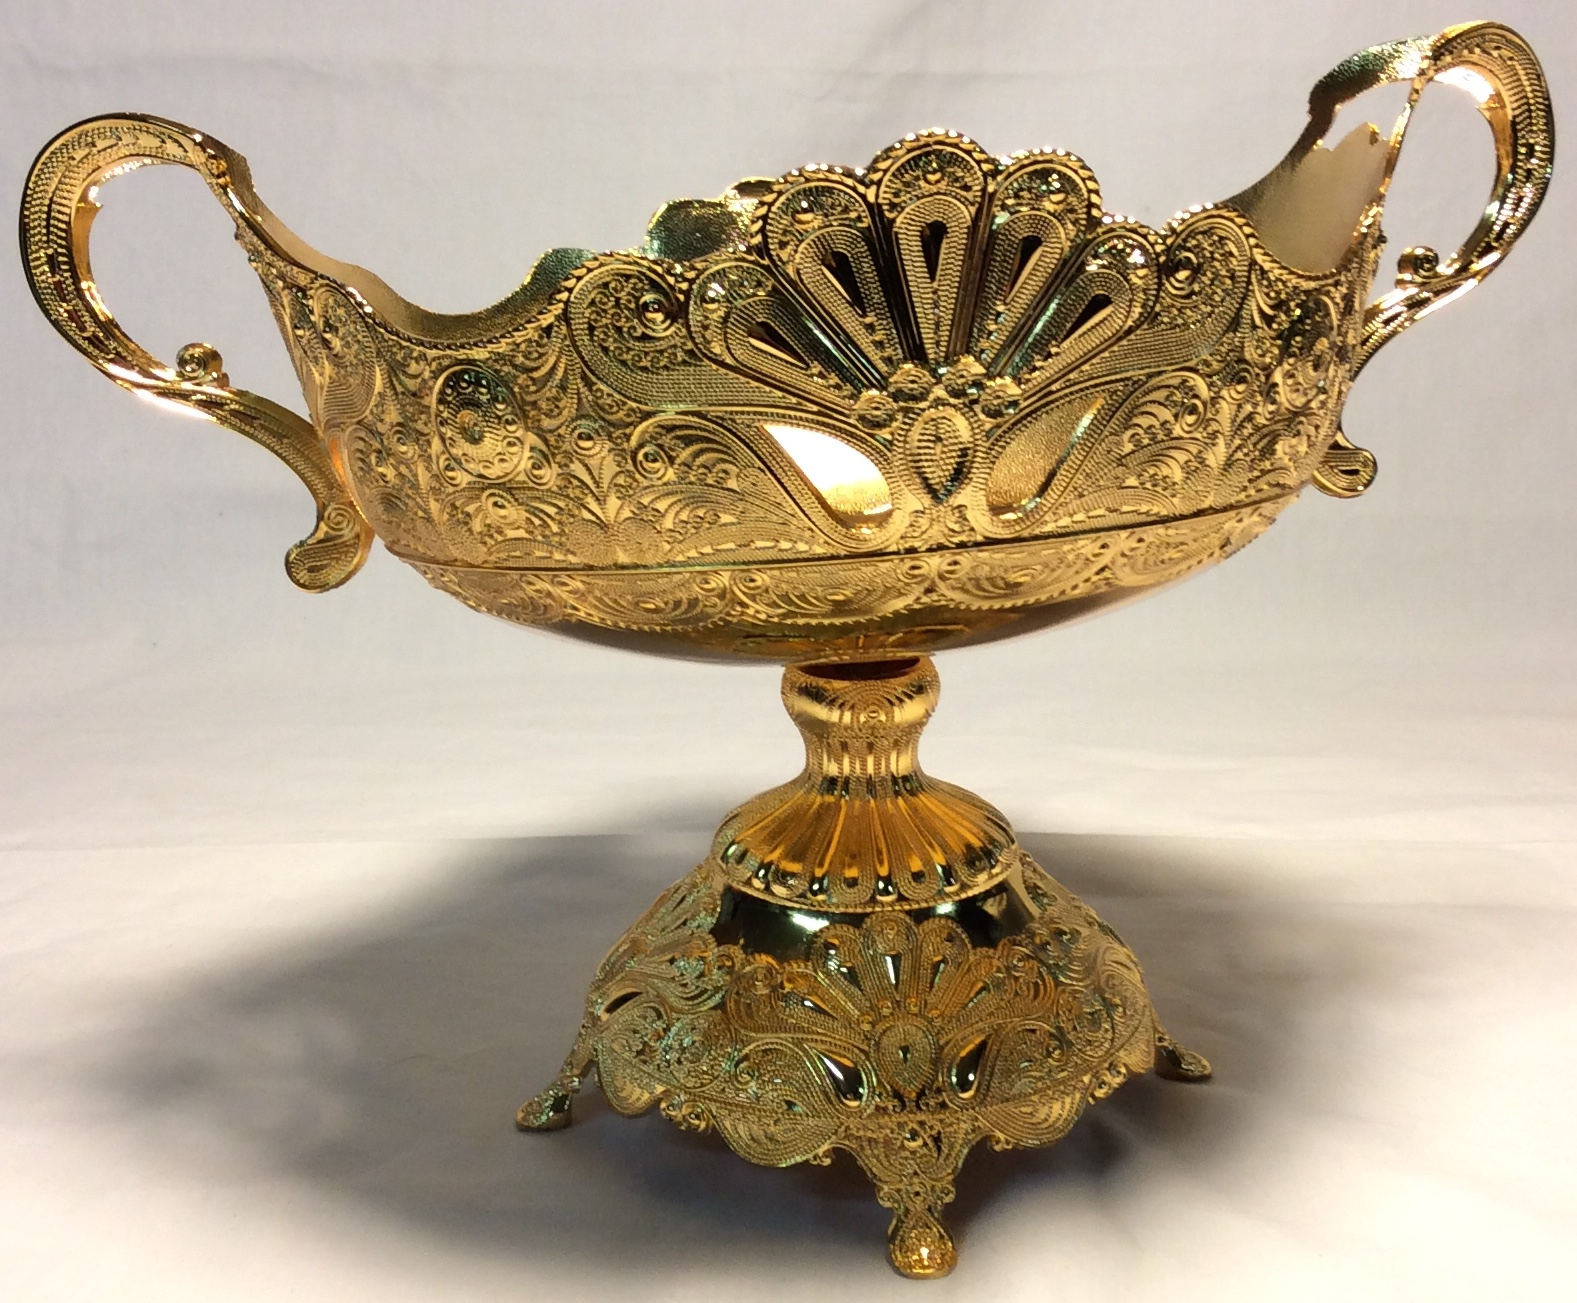 Ornate gold chalice